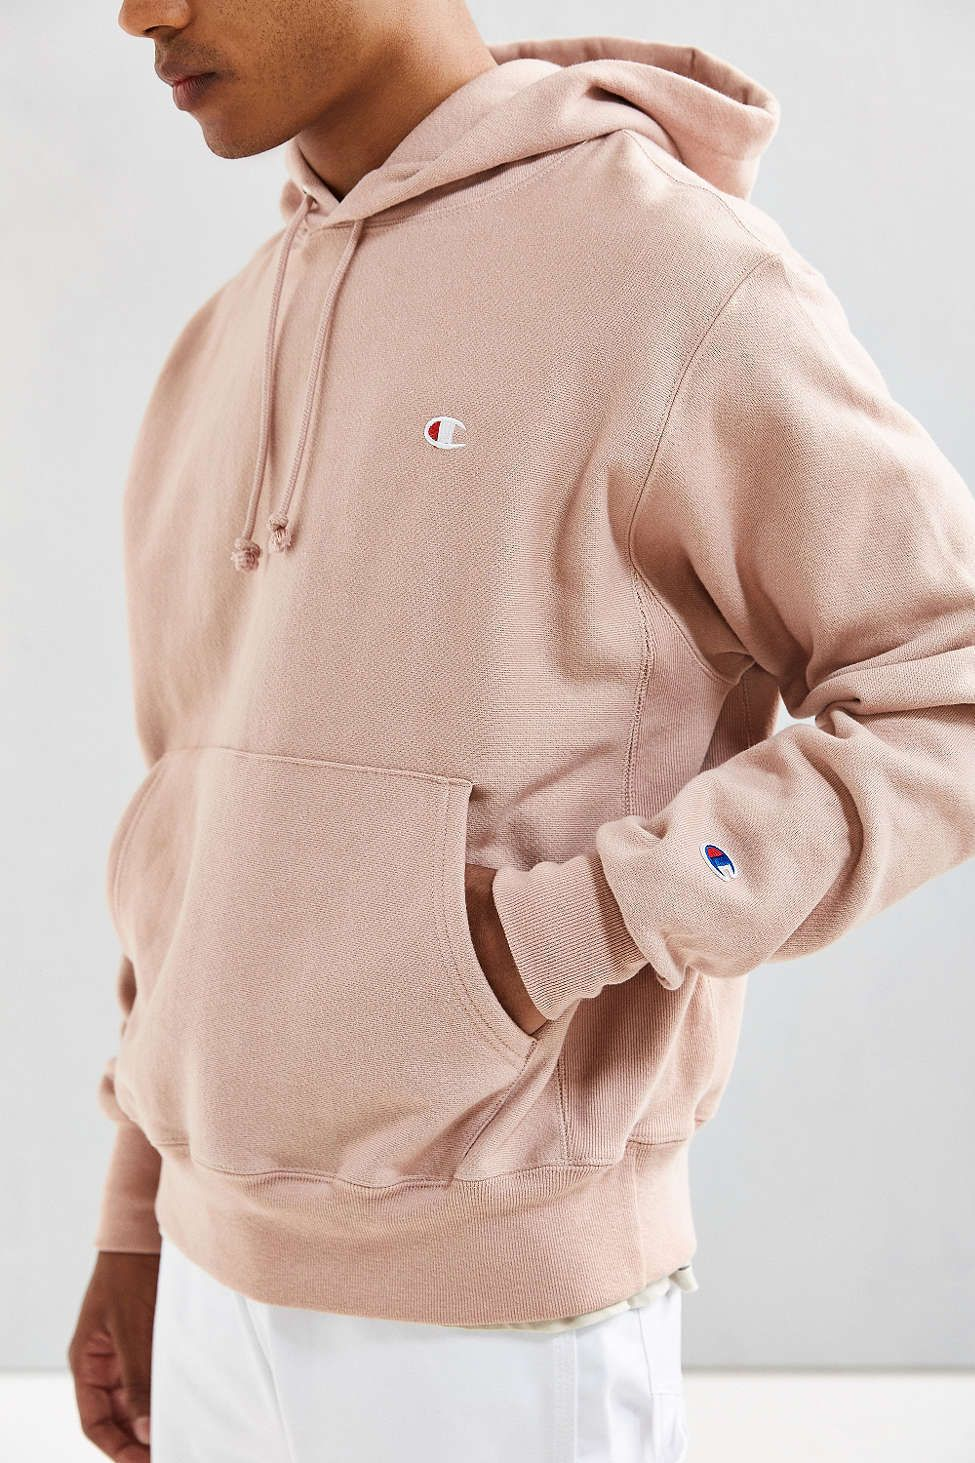 Champion x Urban Outfitters UO Reverse Weave Rose Pink Hoodie Pullover Mens  M Ropa De Invierno f5bd05b6f10